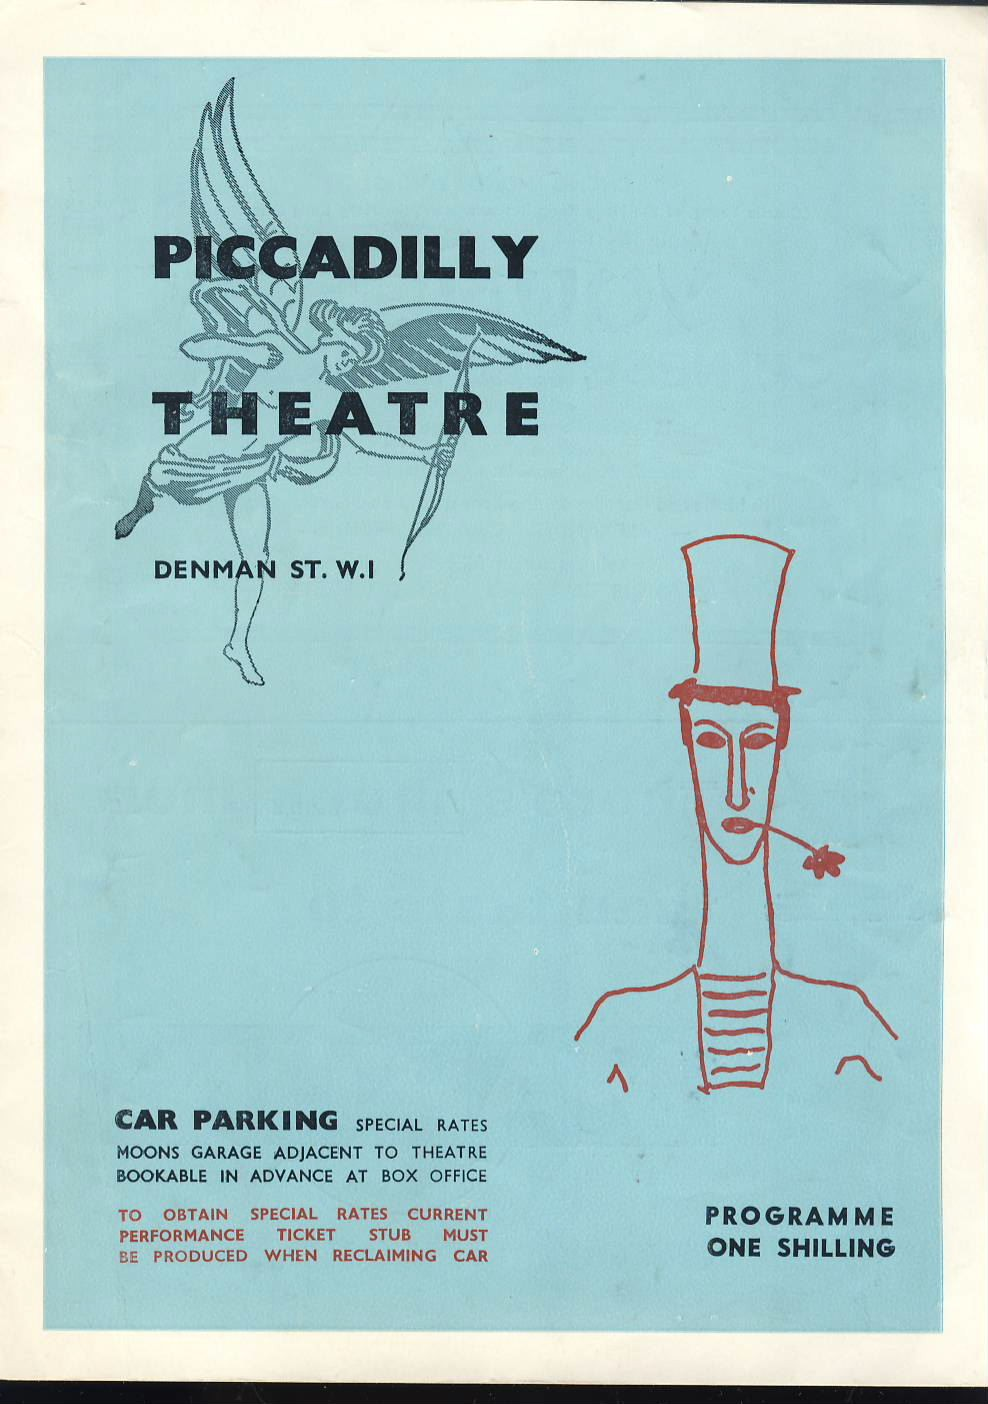 1962 Piccadillly Theatre Marcel Marceau Exercised de Style and Pantomimes de Bip with Pierre Verry - programme. Good used condition with some marks